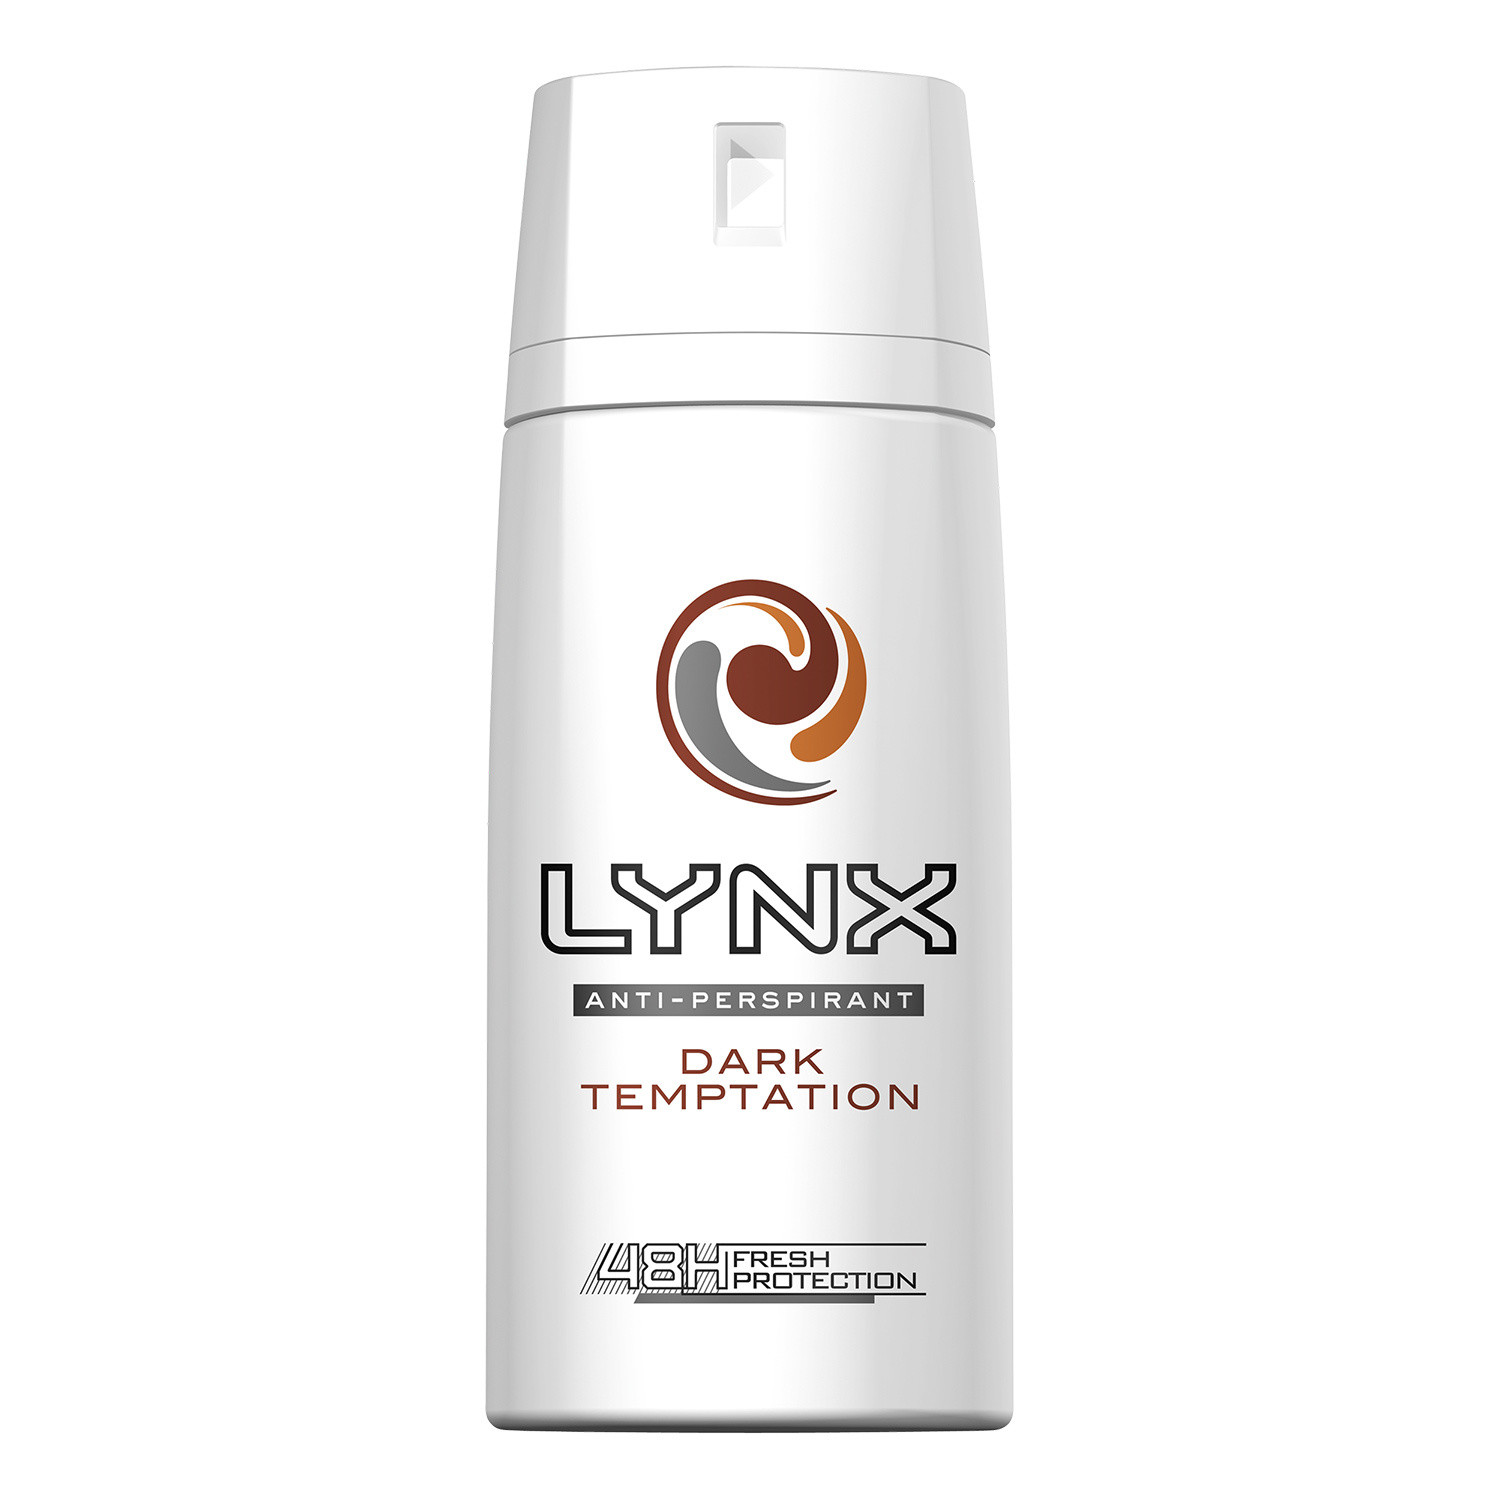 Lynx Dark Temptation Antiperspirant Spray